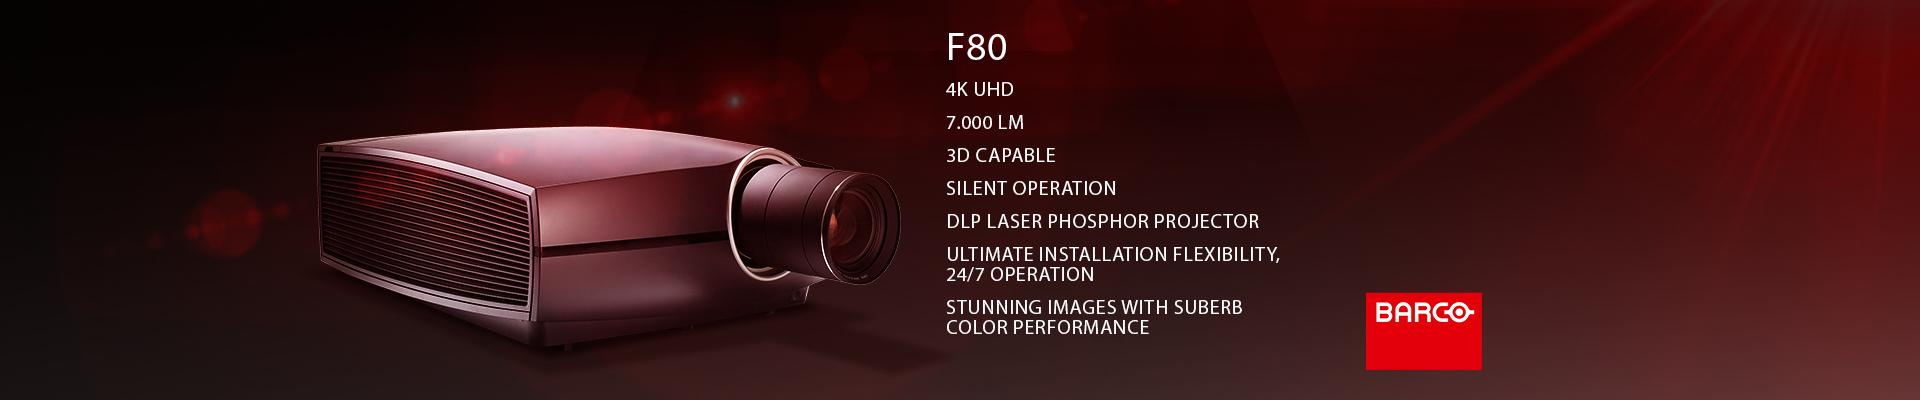 BARCO F80